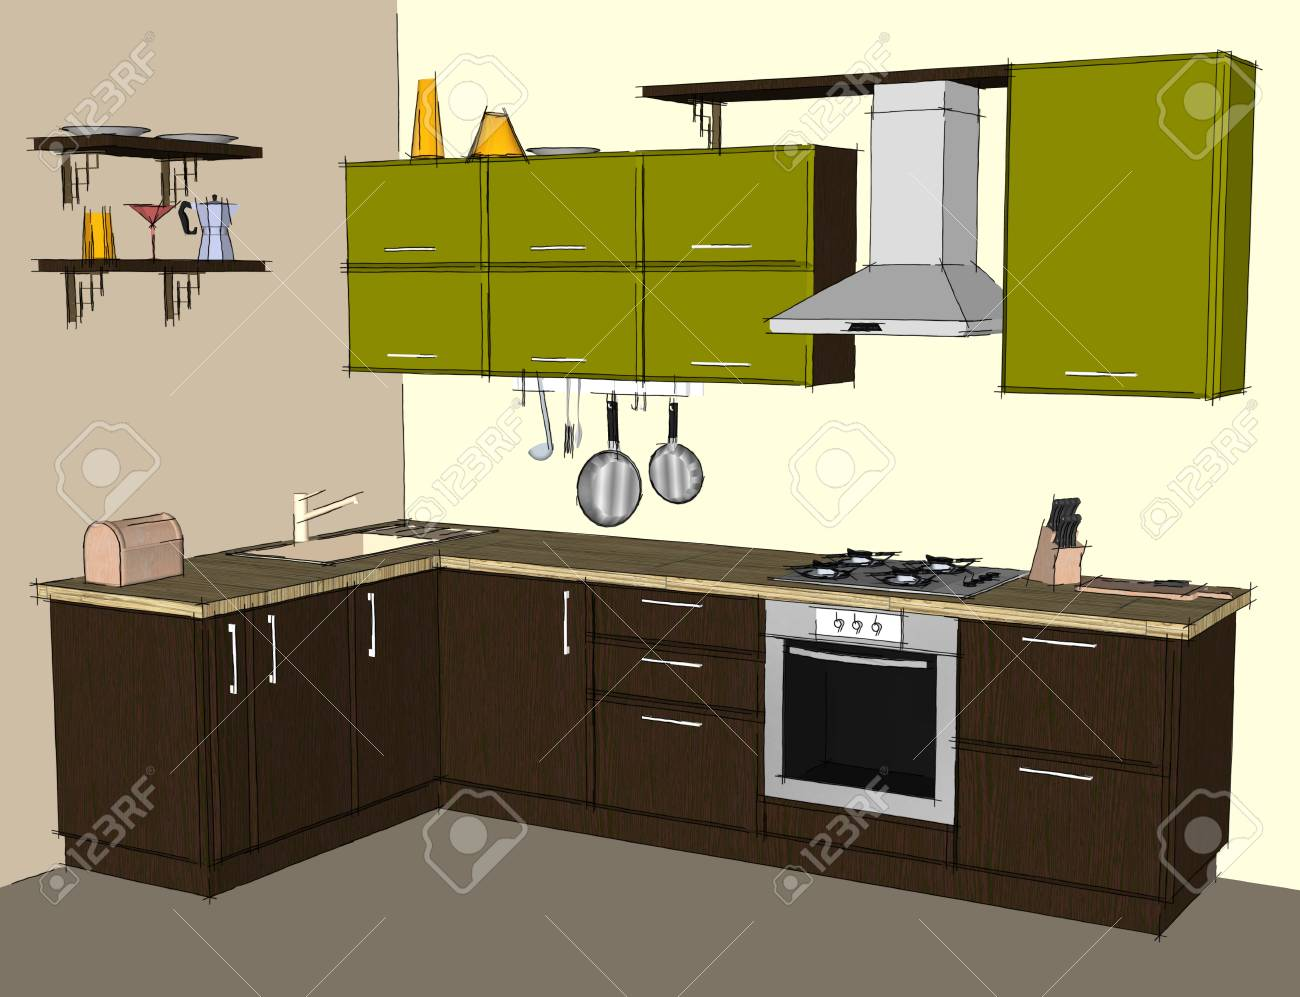 Abstract drawing of green and brown modern corner kitchen interior